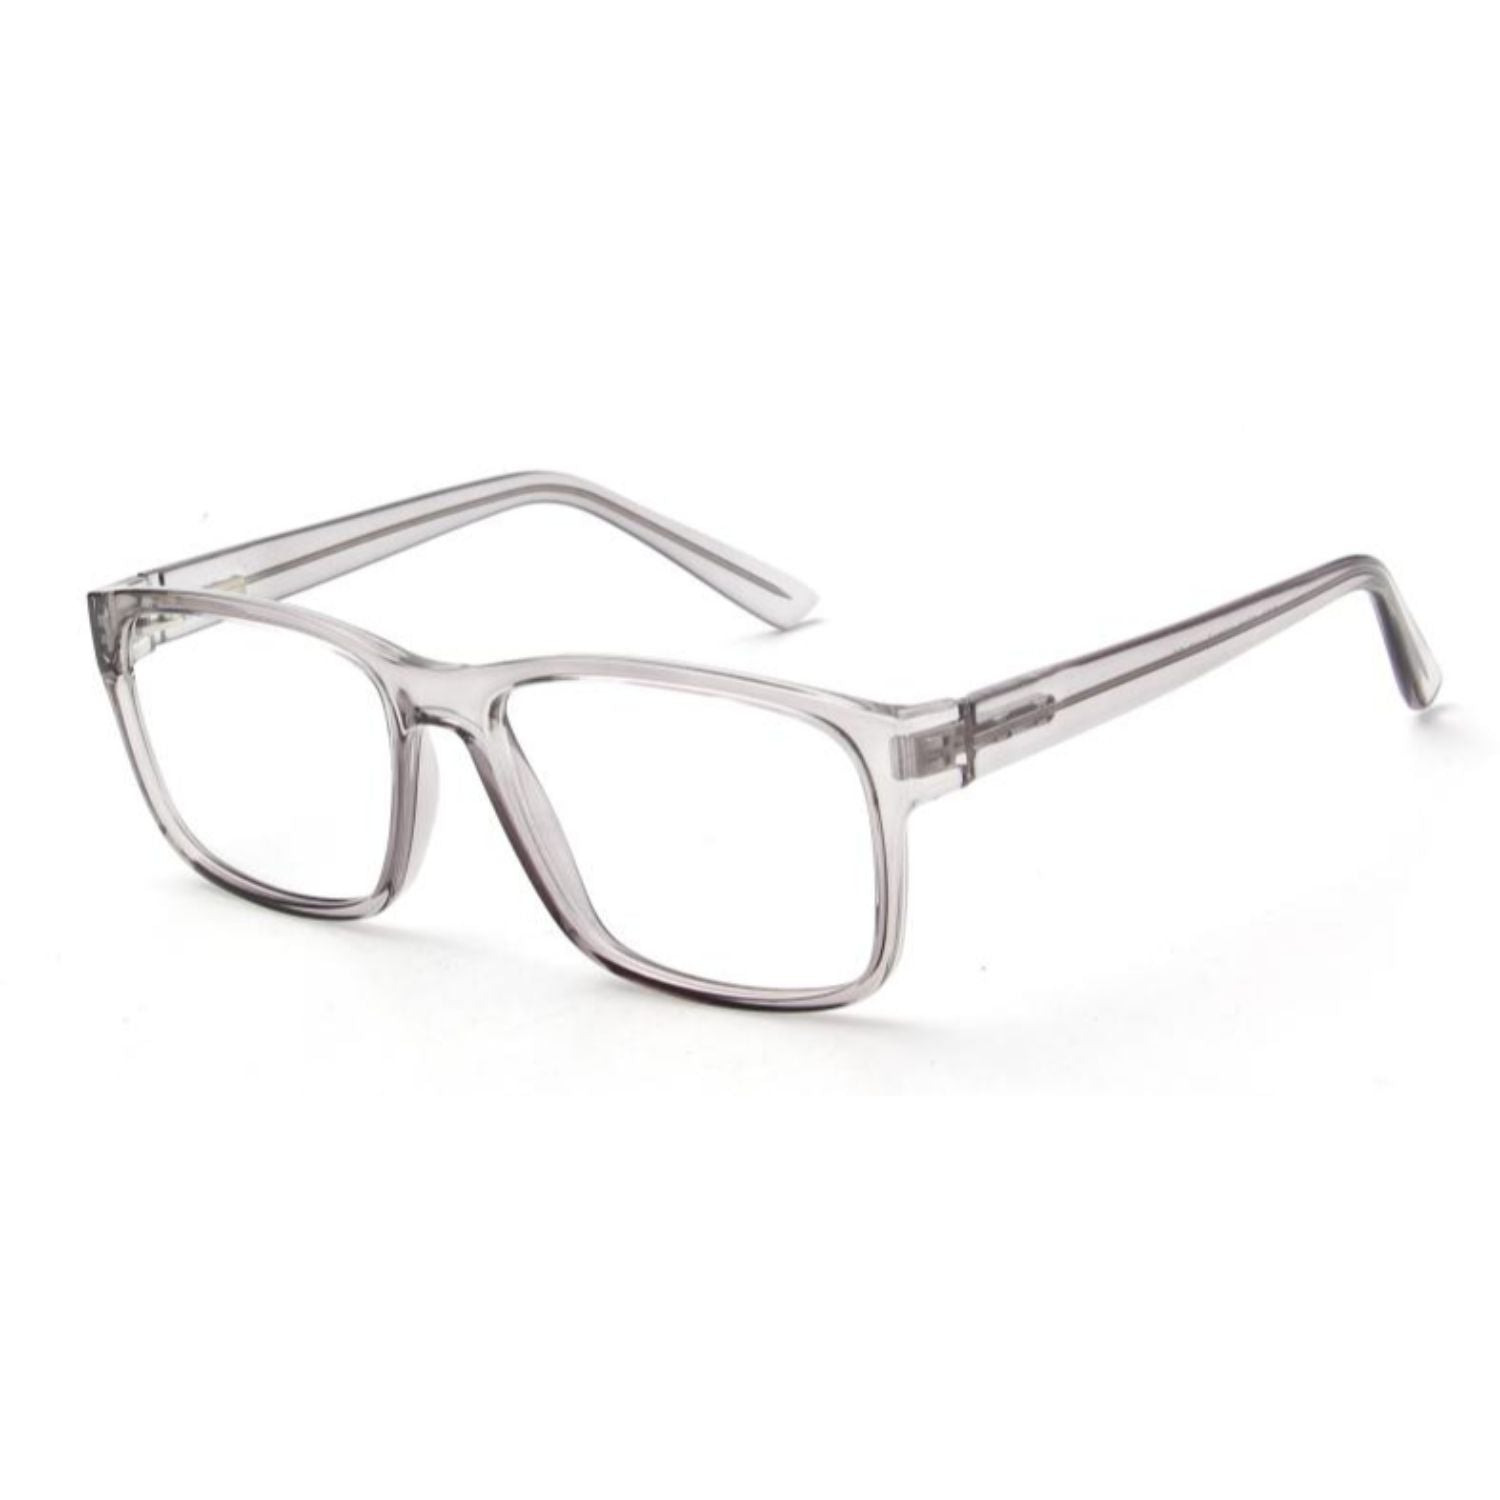 OTR34 - Classic Square Fashion Optical Eyeglasses - Iris Fashion Inc. | Wholesale Sunglasses and Glasses